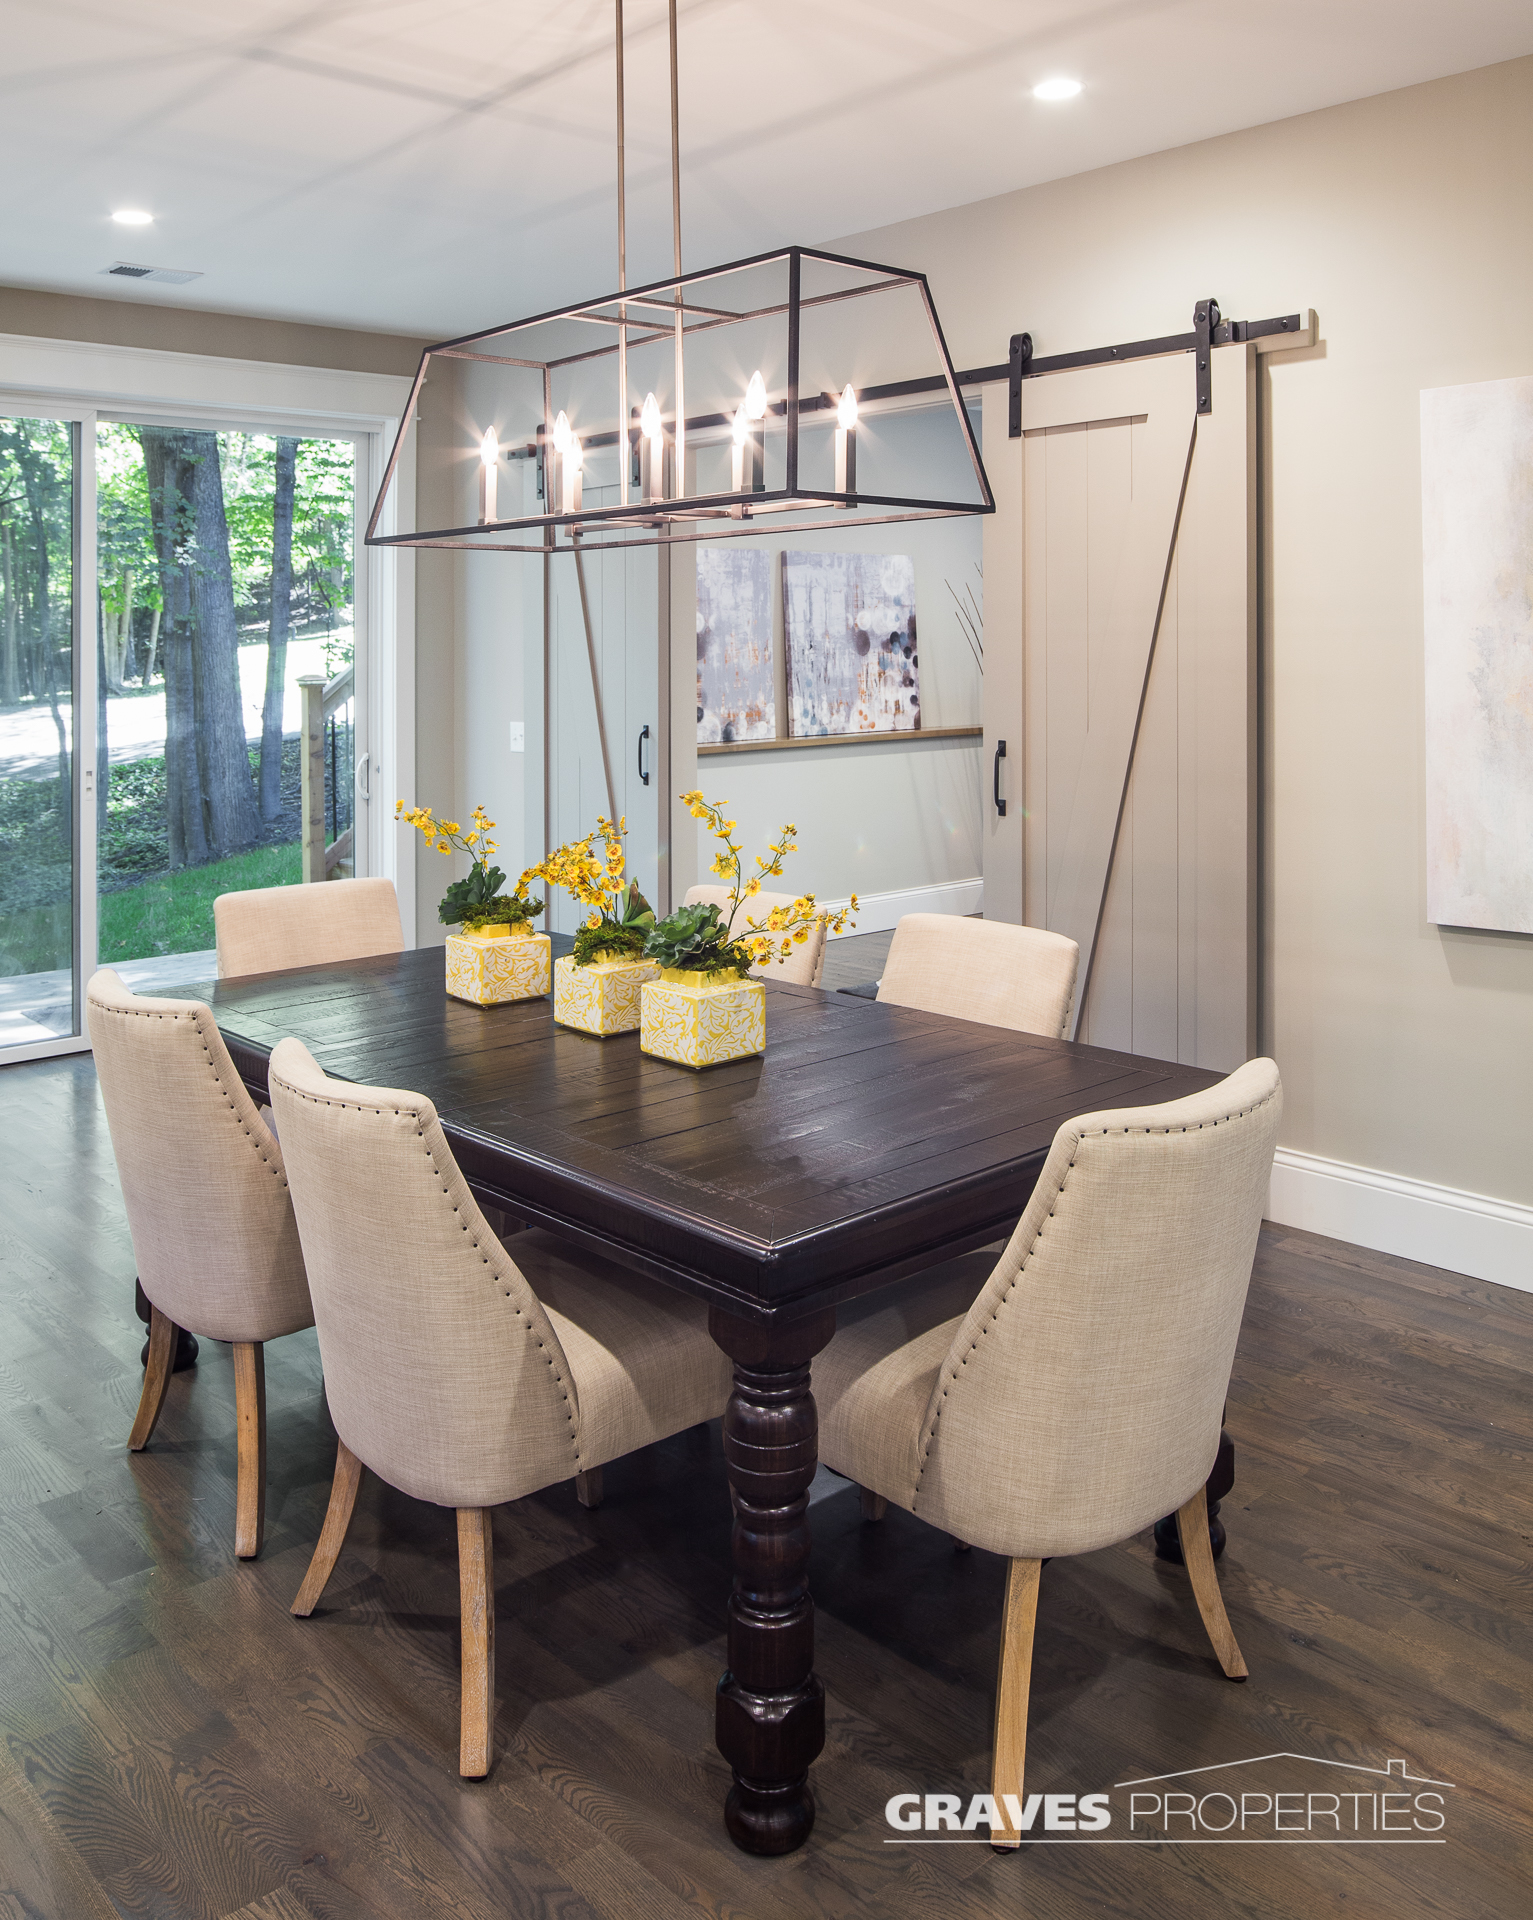 Dining Area with Barn Door